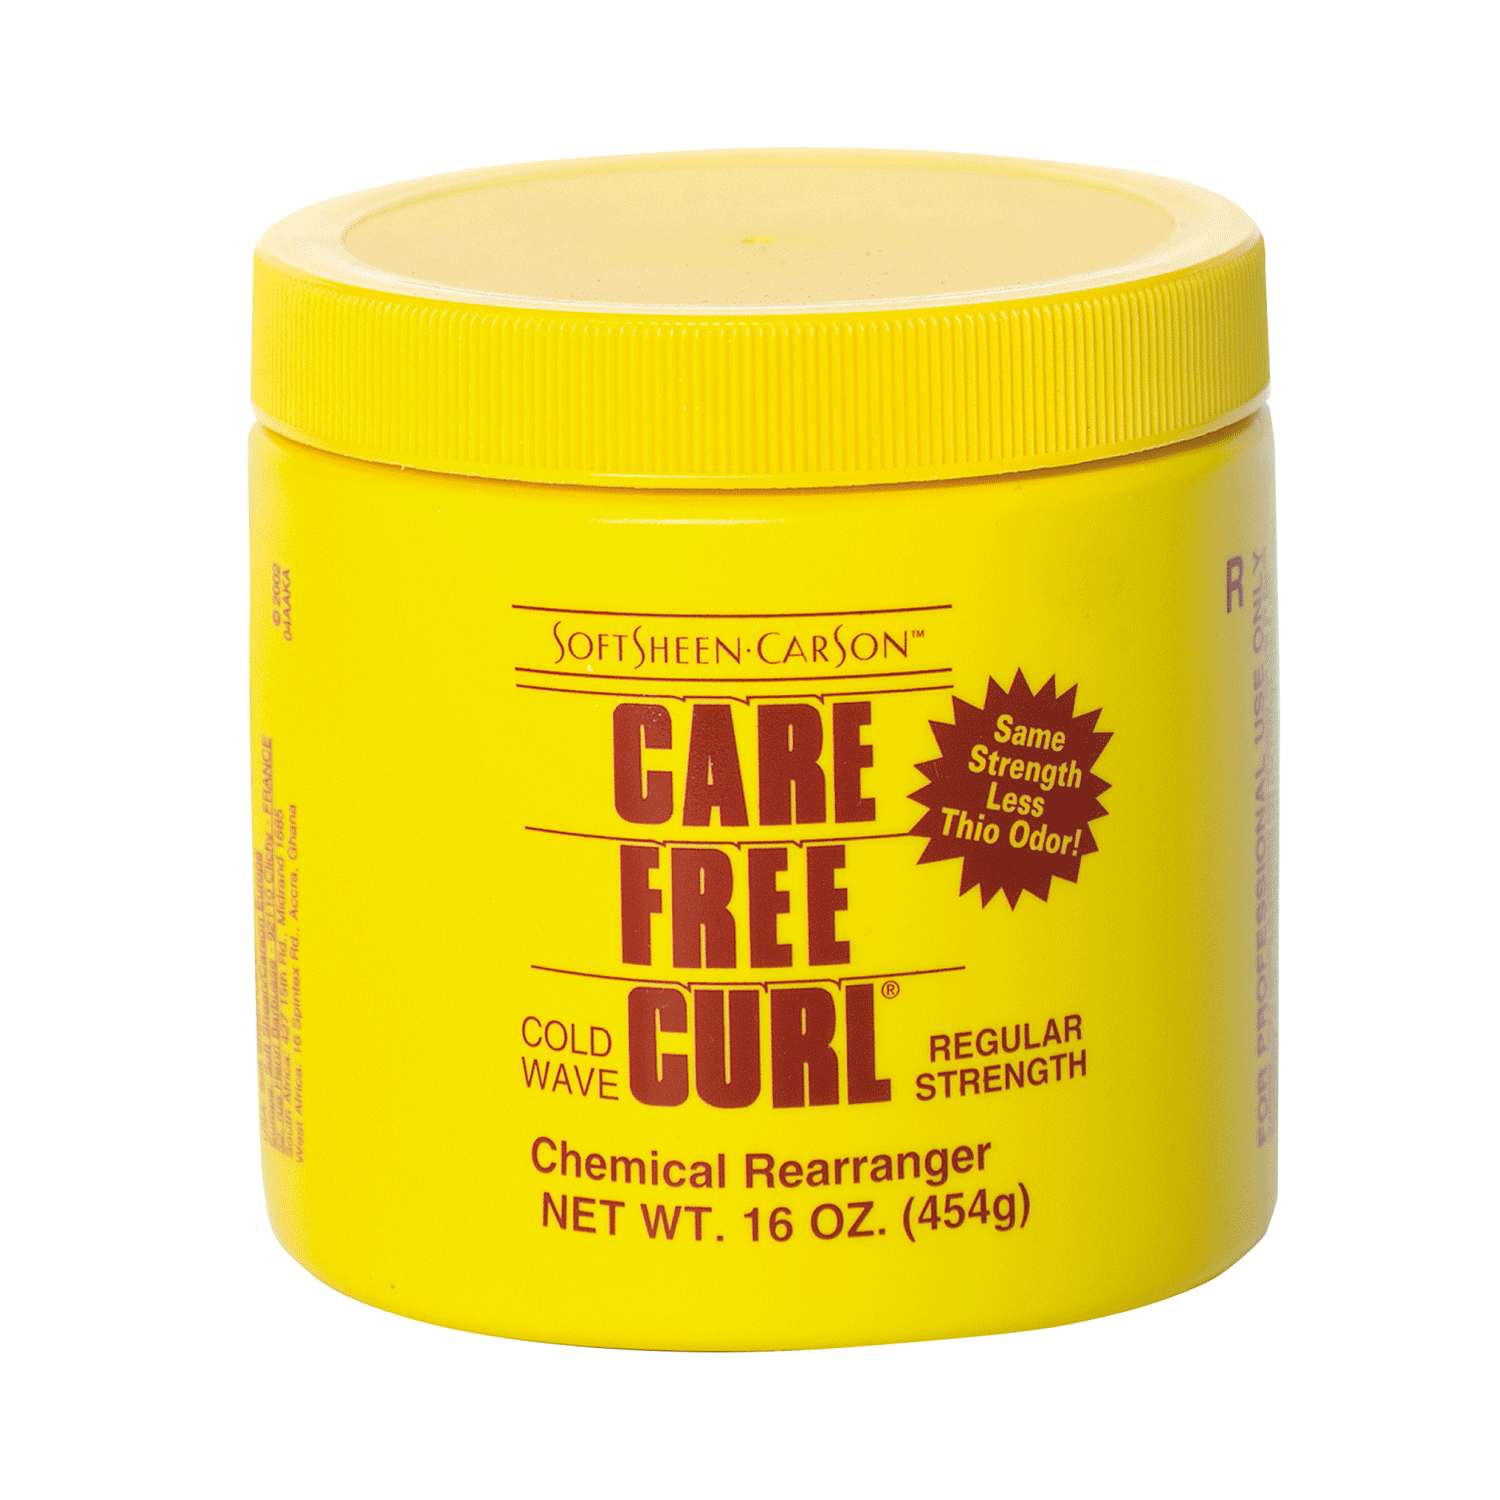 CARE FREE CURL Cold Wave